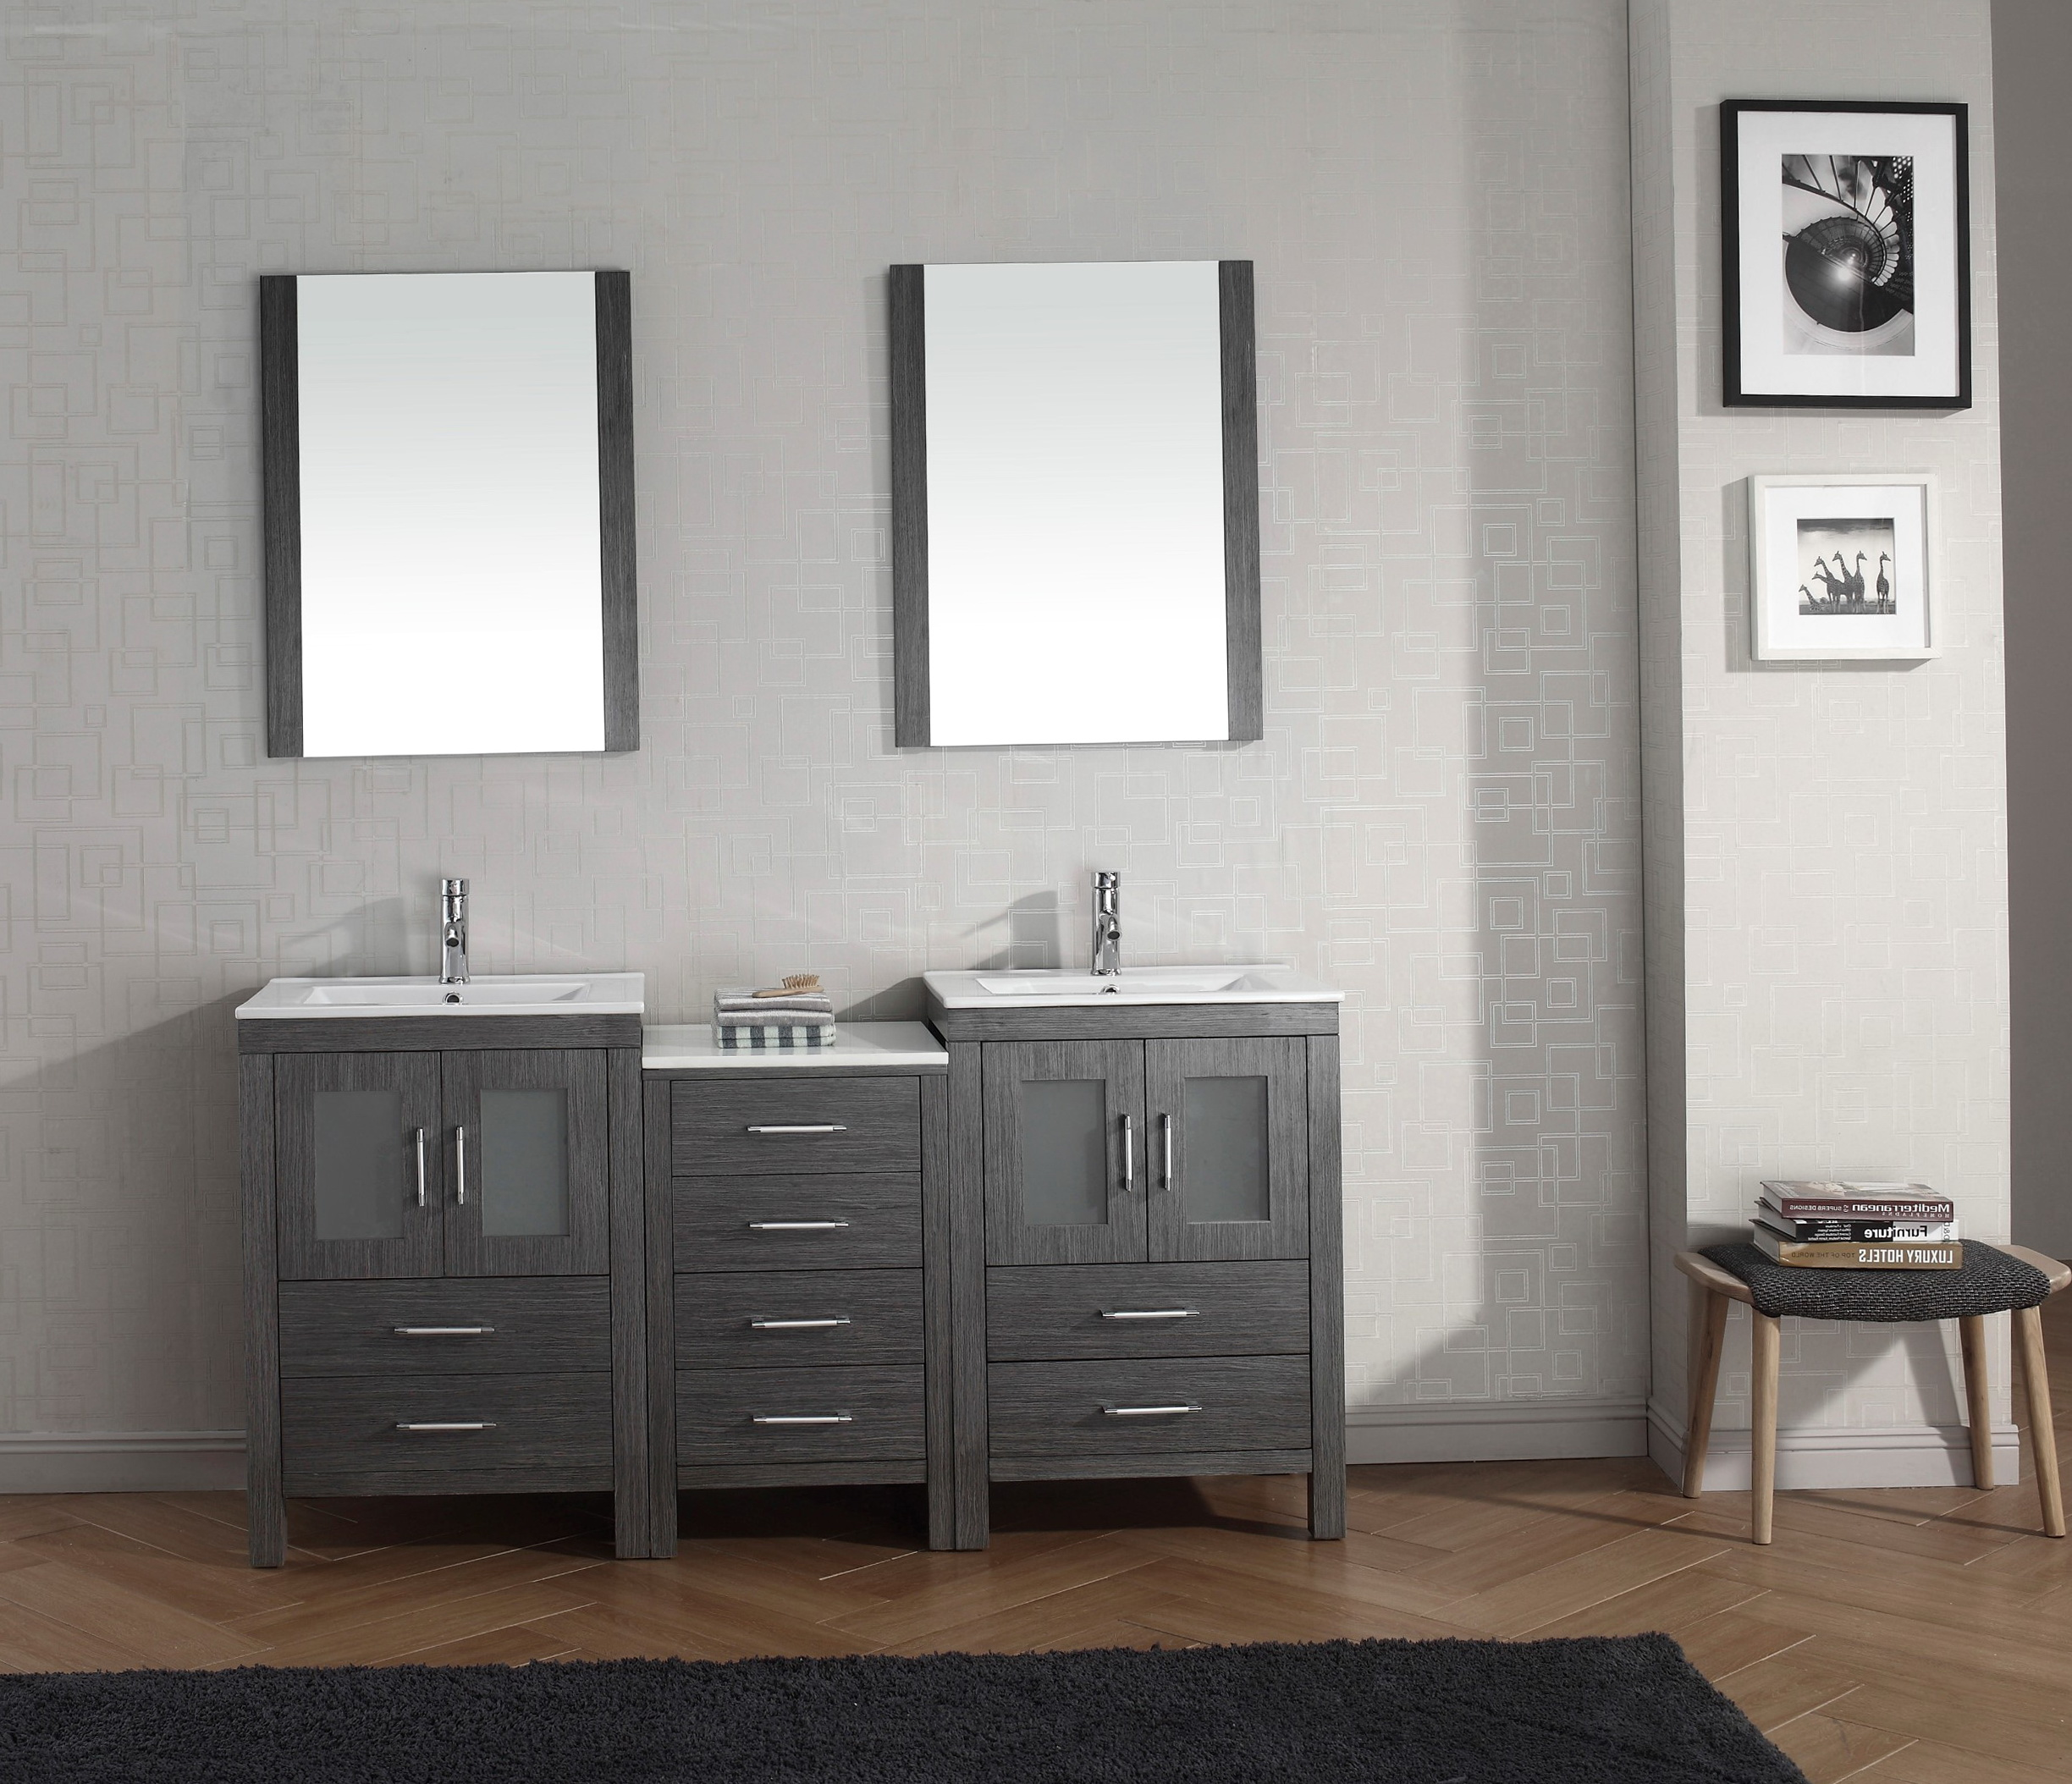 ikea bathroom mirrors uk ikea bathroom mirror uk home design ideas 18826